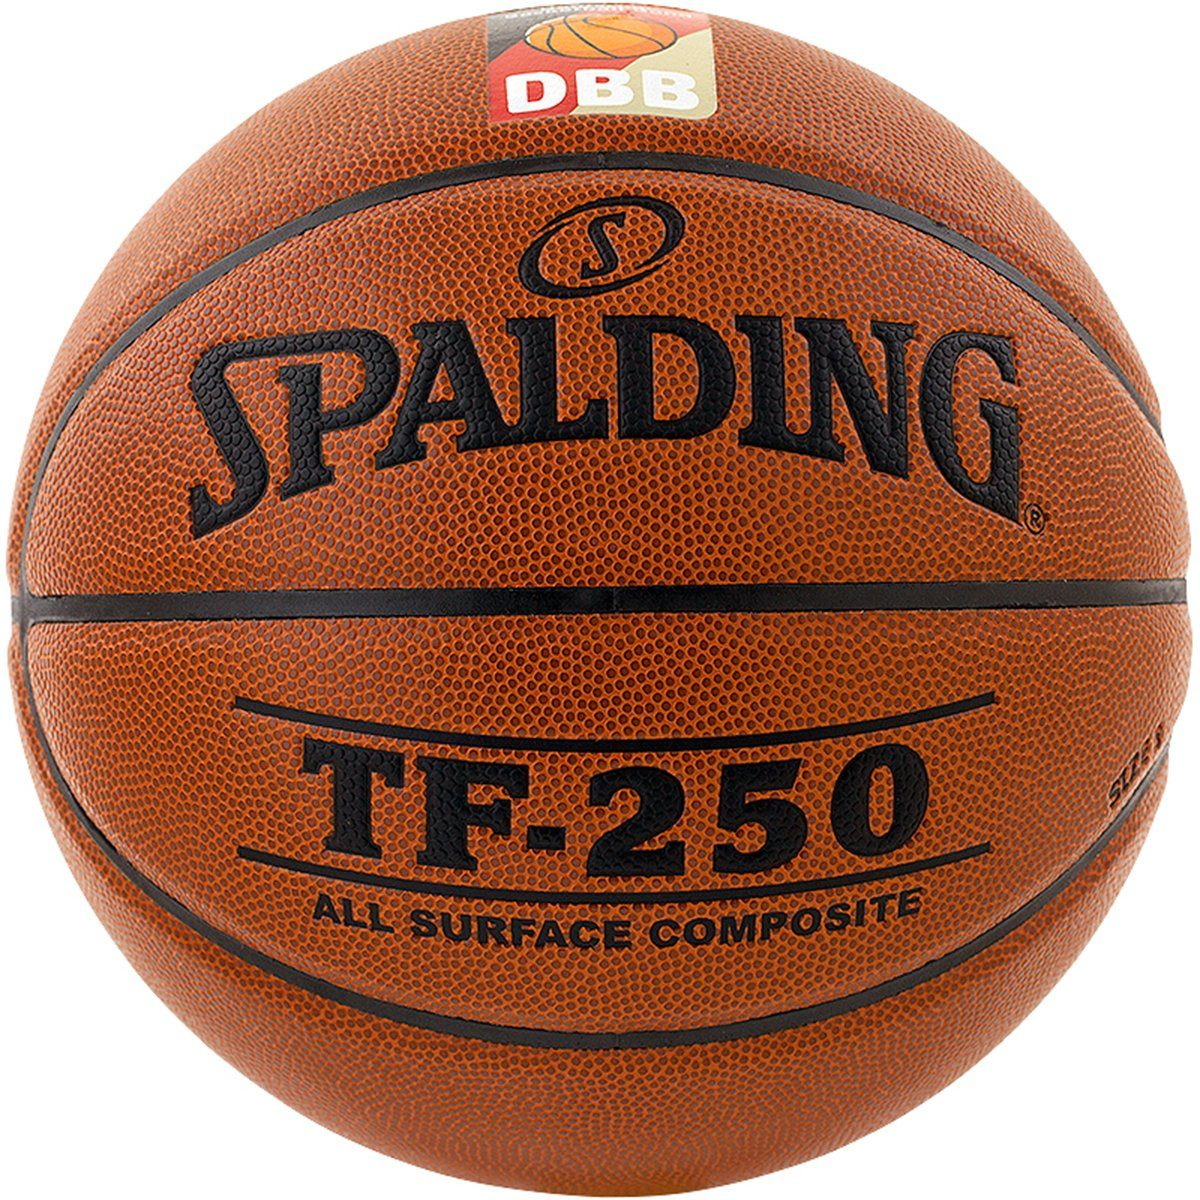 SPALDING TF250 DBB Basketball